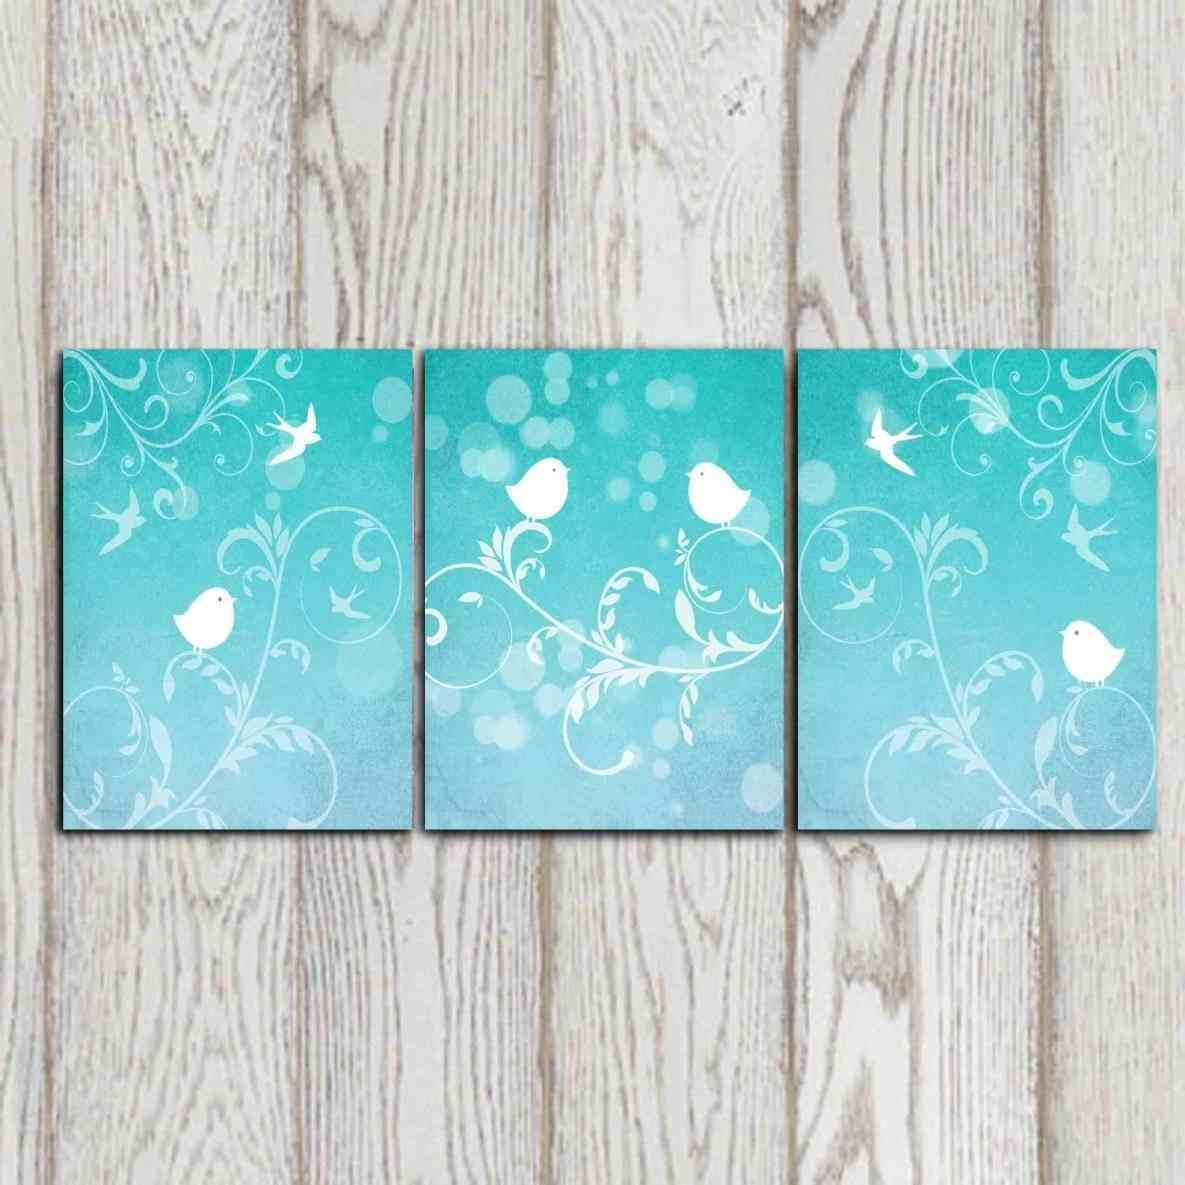 Set Turquoise And Grey Wall Art Of Bird Art Prints Turquoise Wall Regarding Most Current Turquoise Wall Art (Gallery 19 of 20)